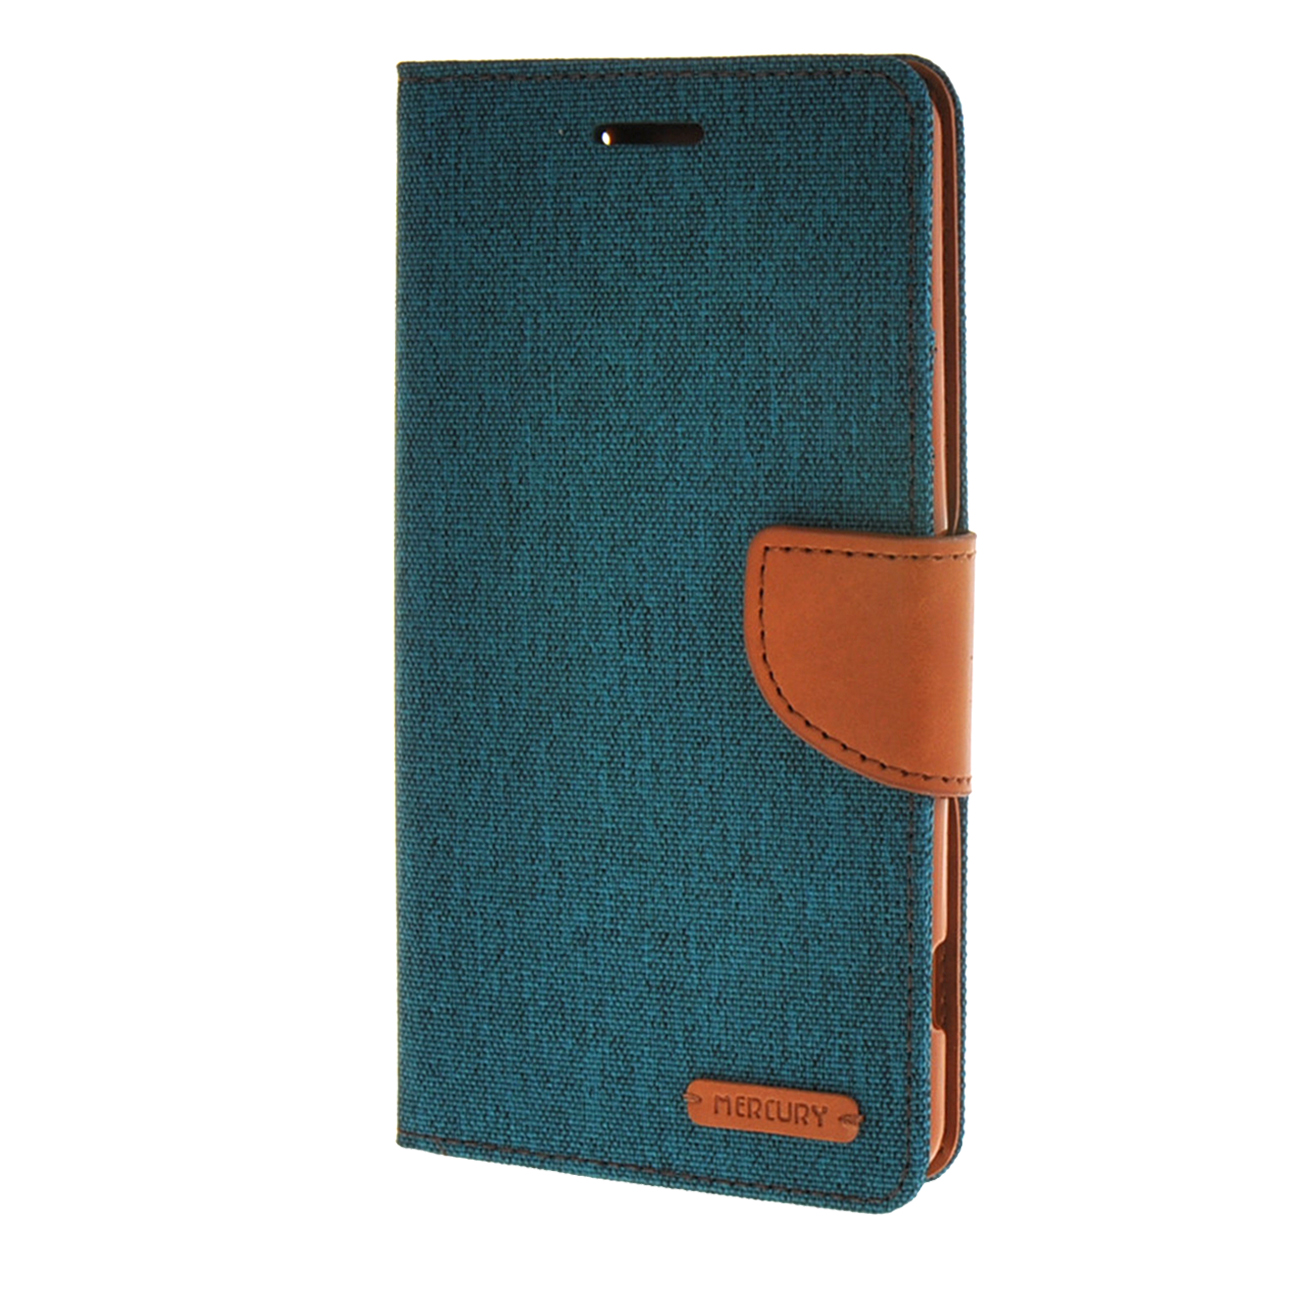 MOONCASE mooncase hard rubberized rubber coating devise back чехол для sony xperia z4 green